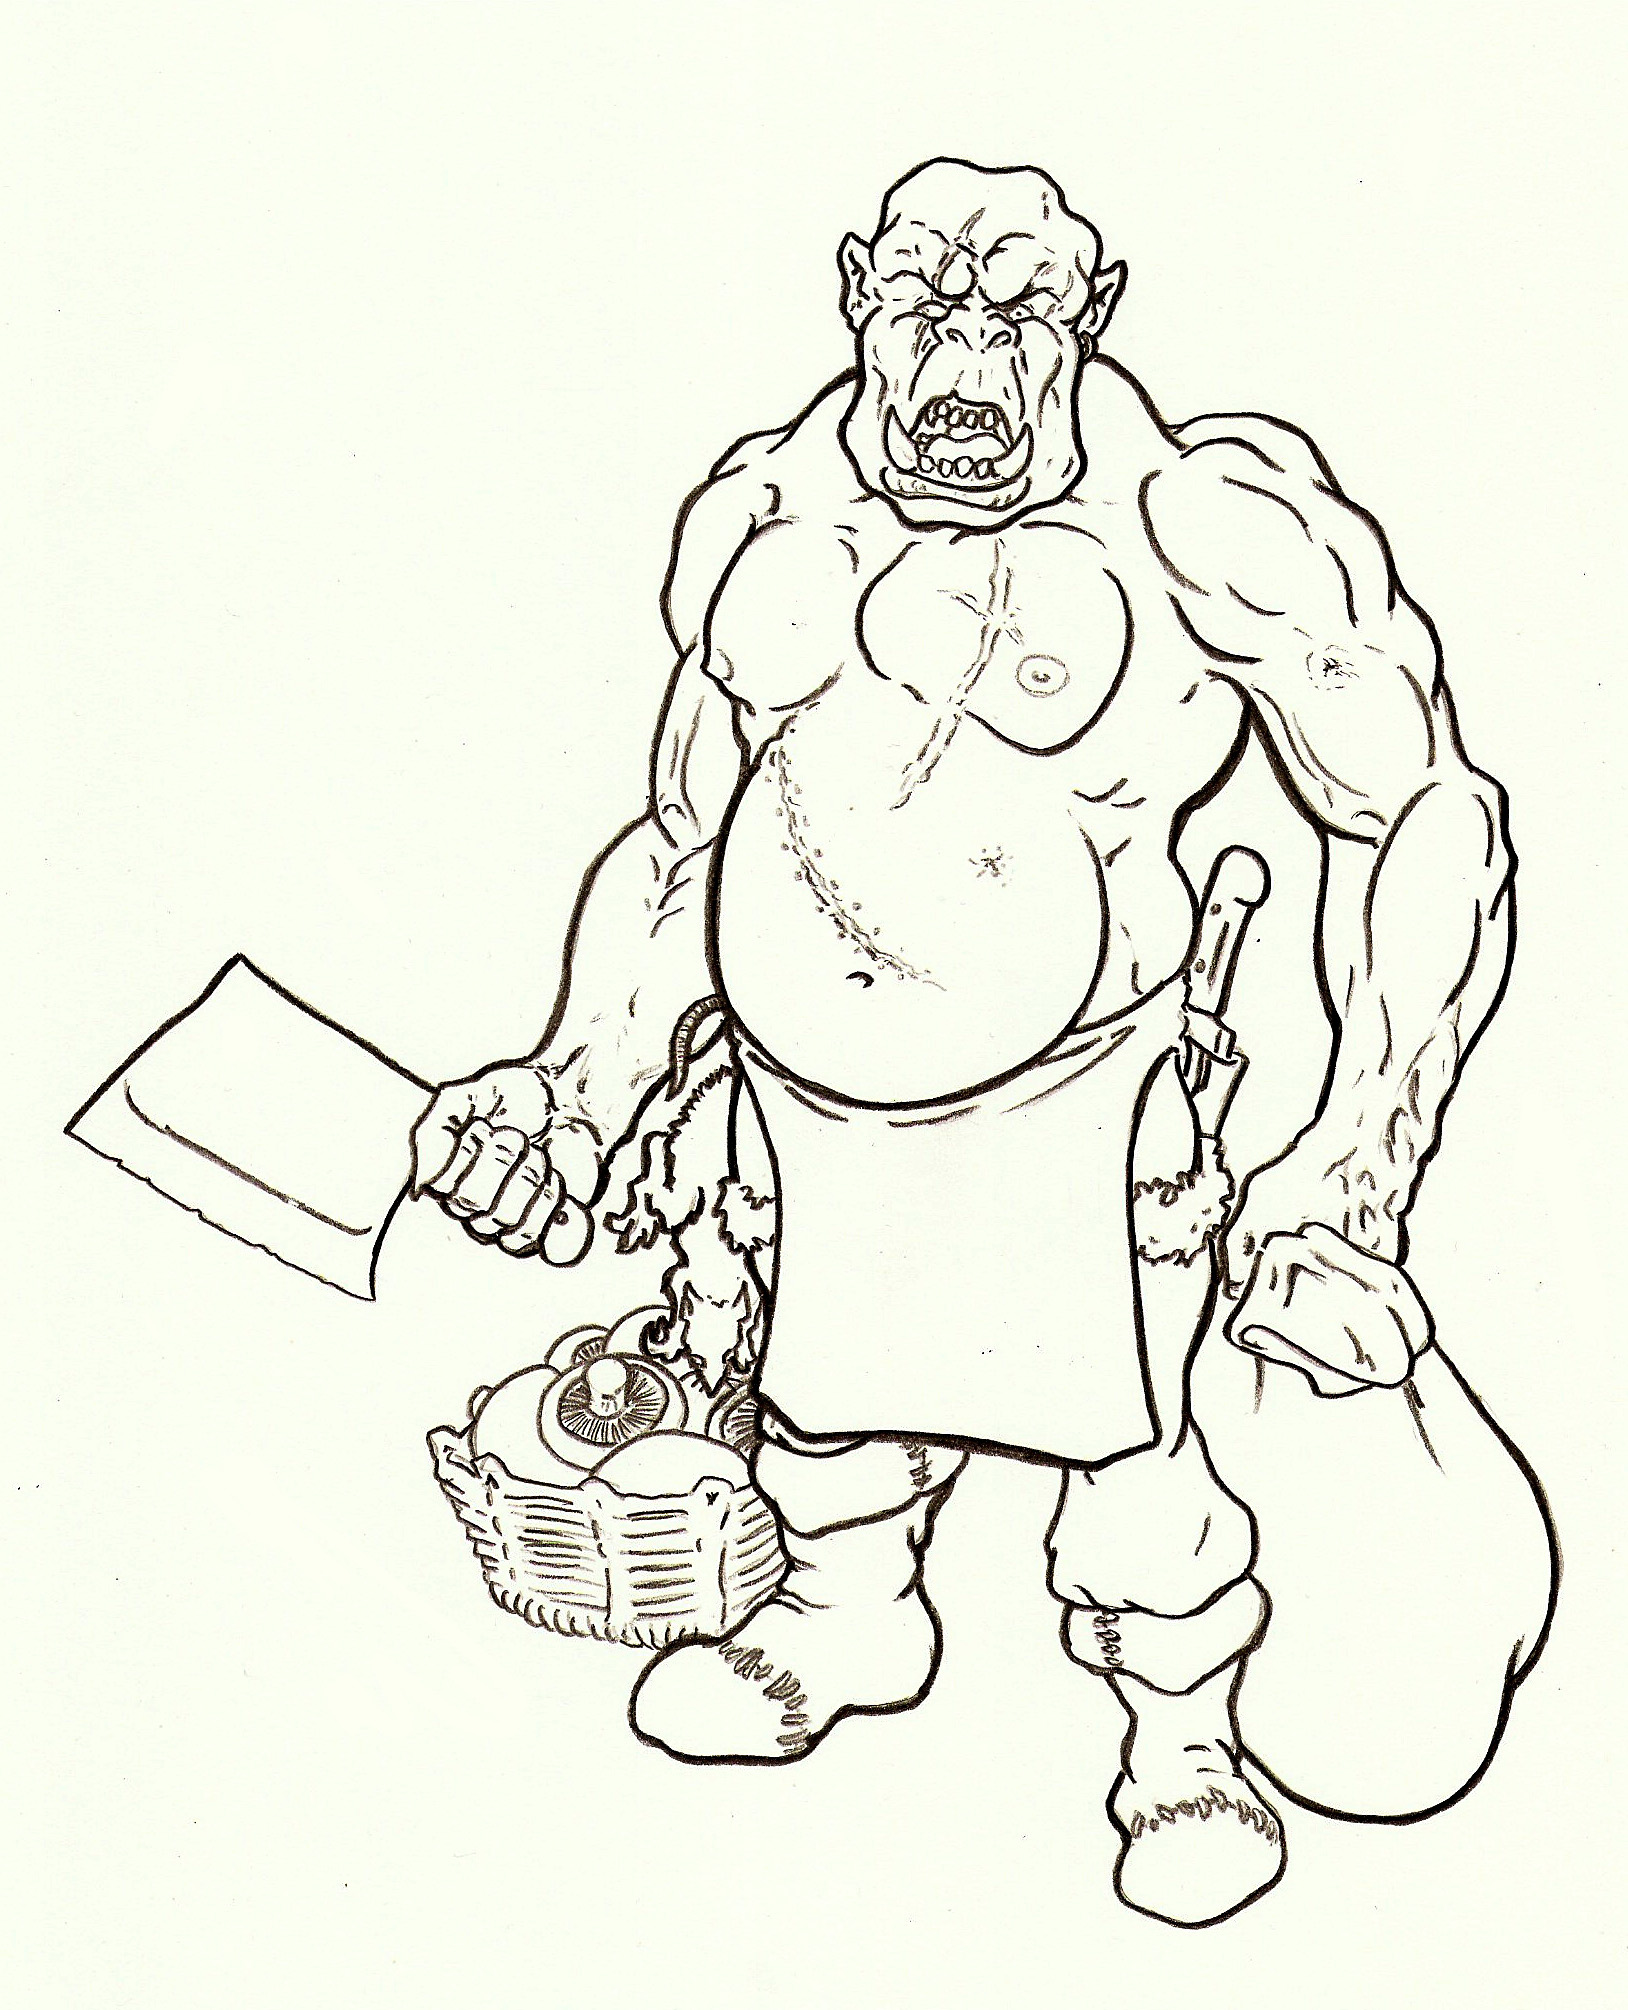 Drawn orc dnd Orc Cook Torno Rob Test